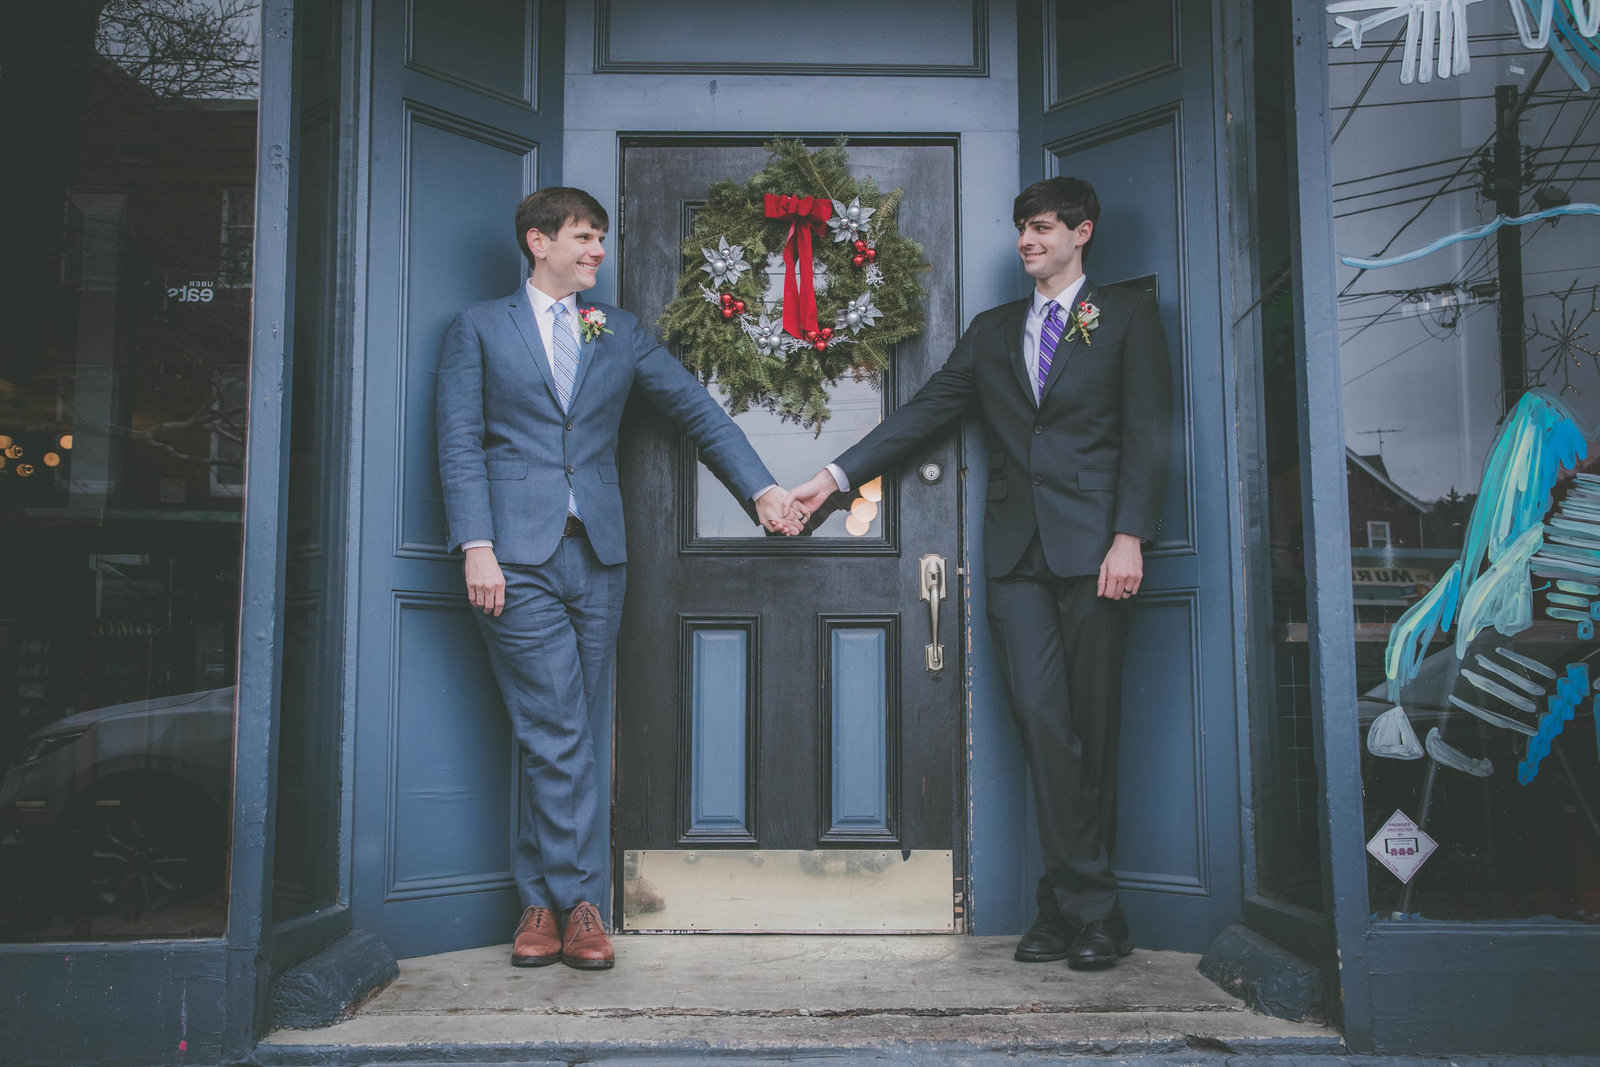 Gay couple hold hands against blue building during their elopement.